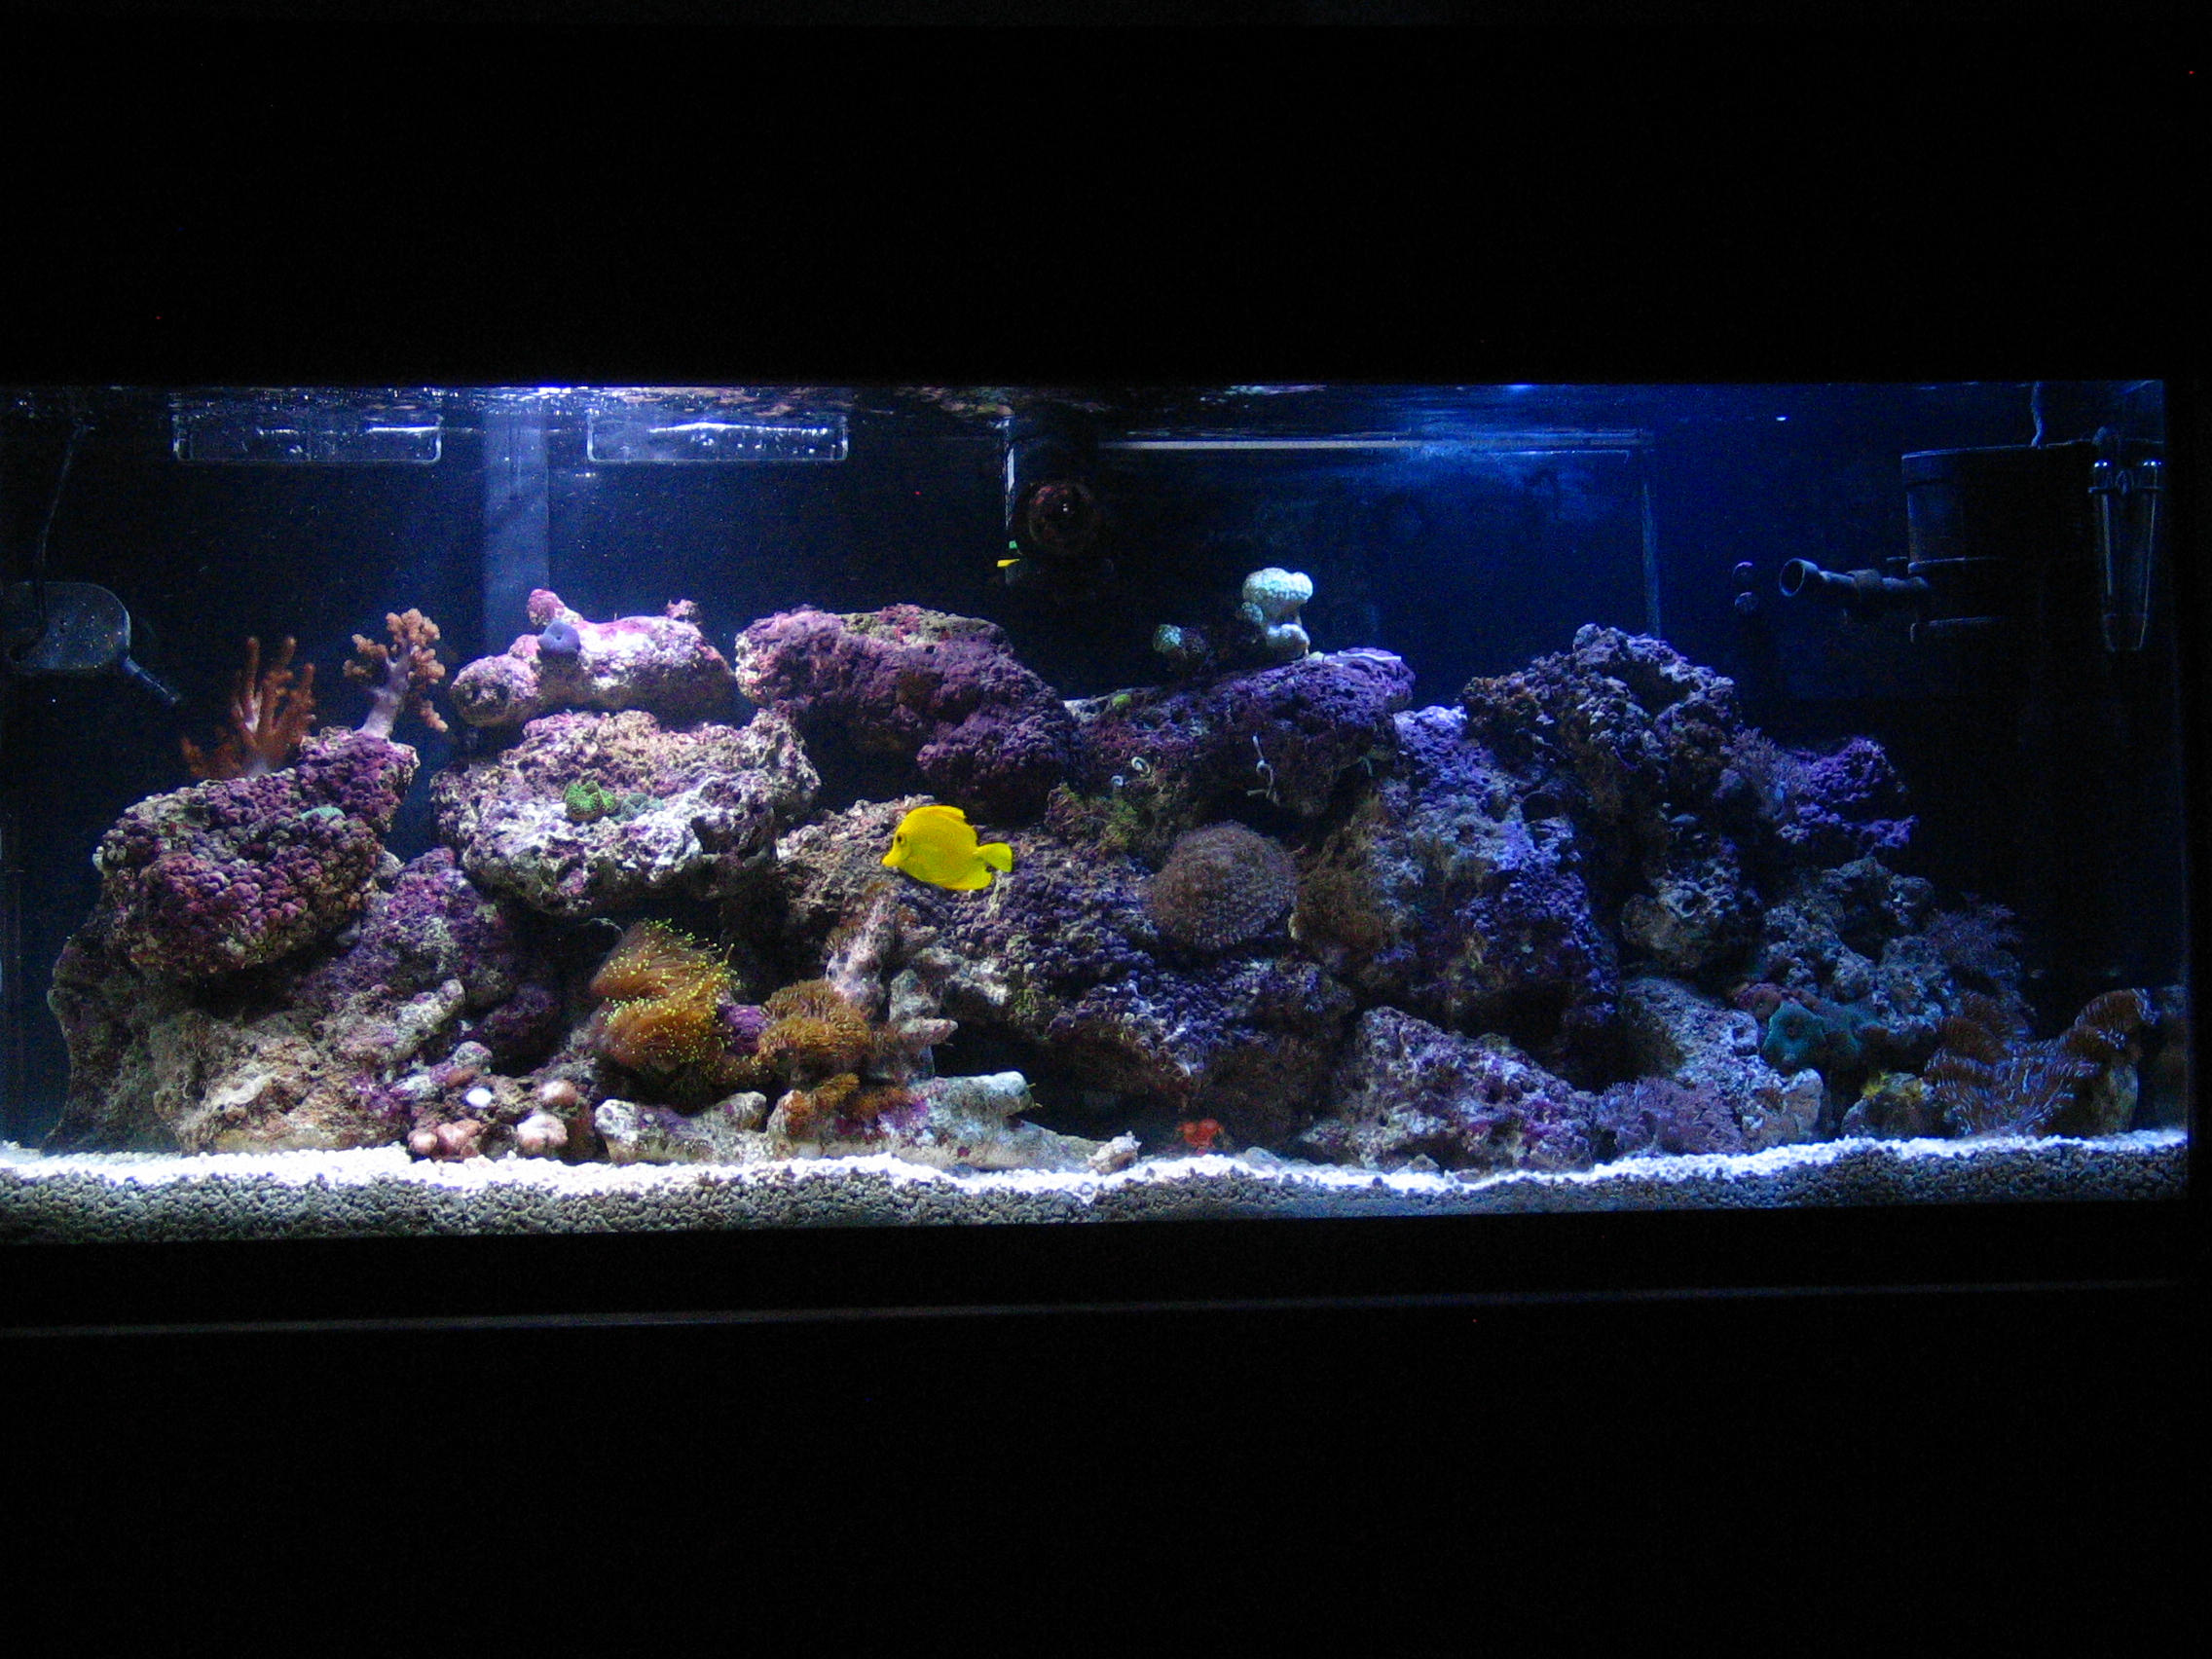 75 gallon aquarium on second floor 75 gallon aquarium on for Floor fish tank